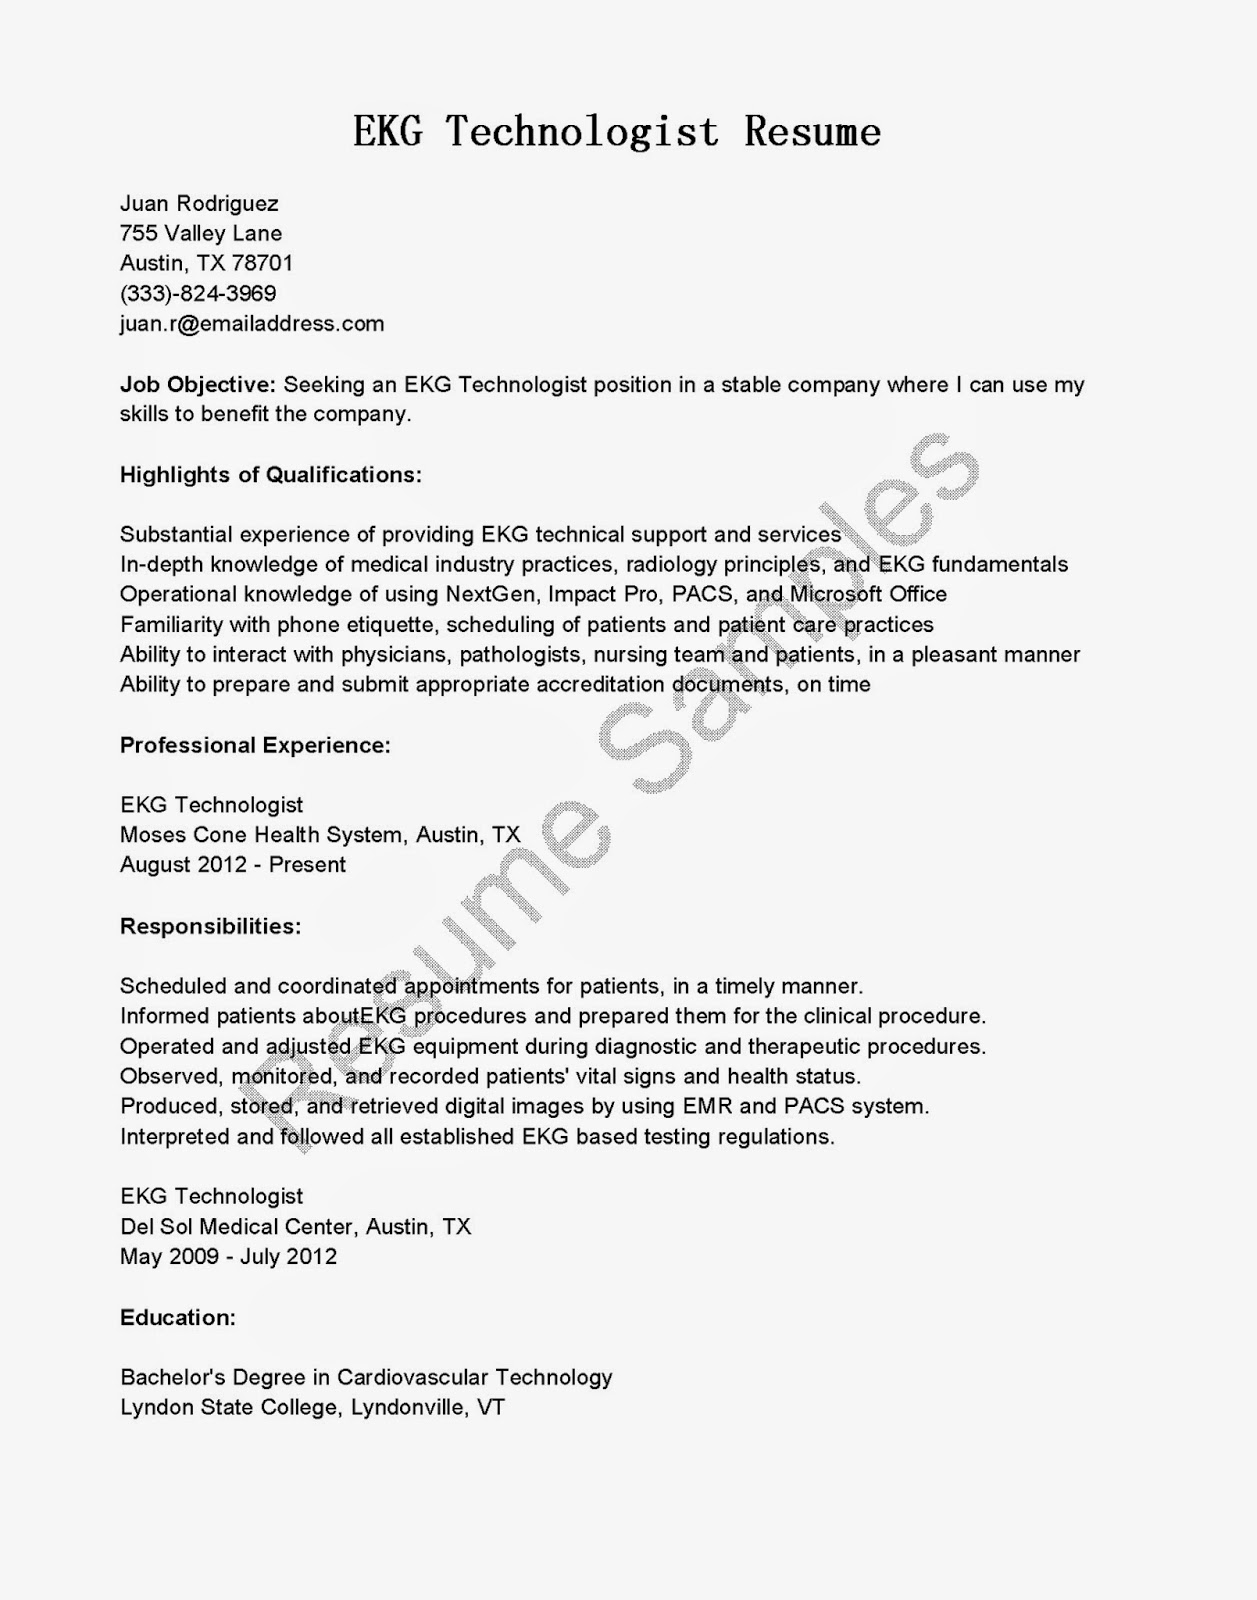 Resume Quickly By Computer Repair Technician Resume Quickly Reviews  Customer